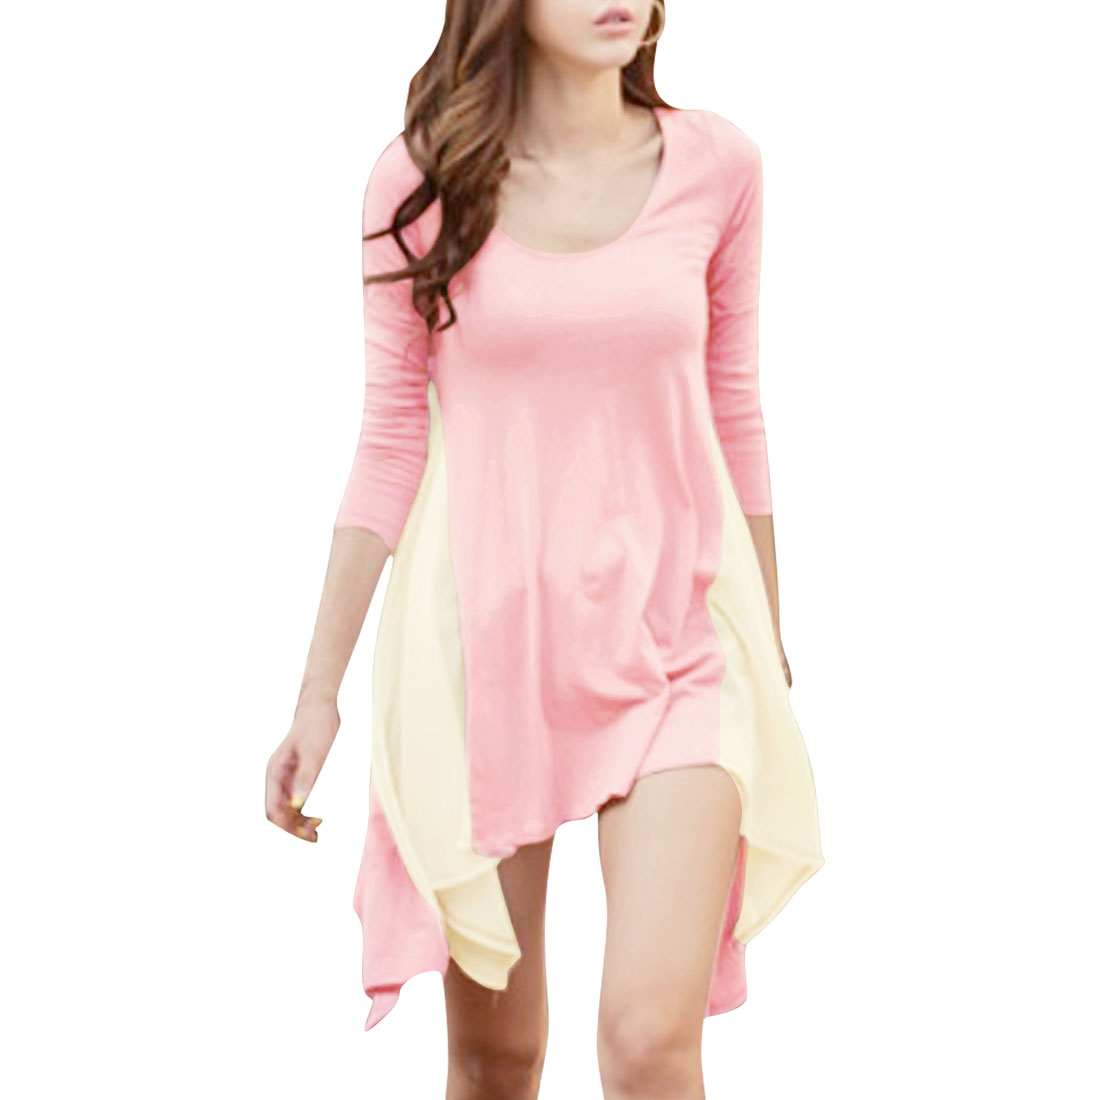 69028fe66e SmackTom - Fashion Sexy Womens Summer Lace Top Loose Sleeveless Blouse  Ladies Casual Tank Tops T-Shirt (Pink) Size-S - Walmart.com